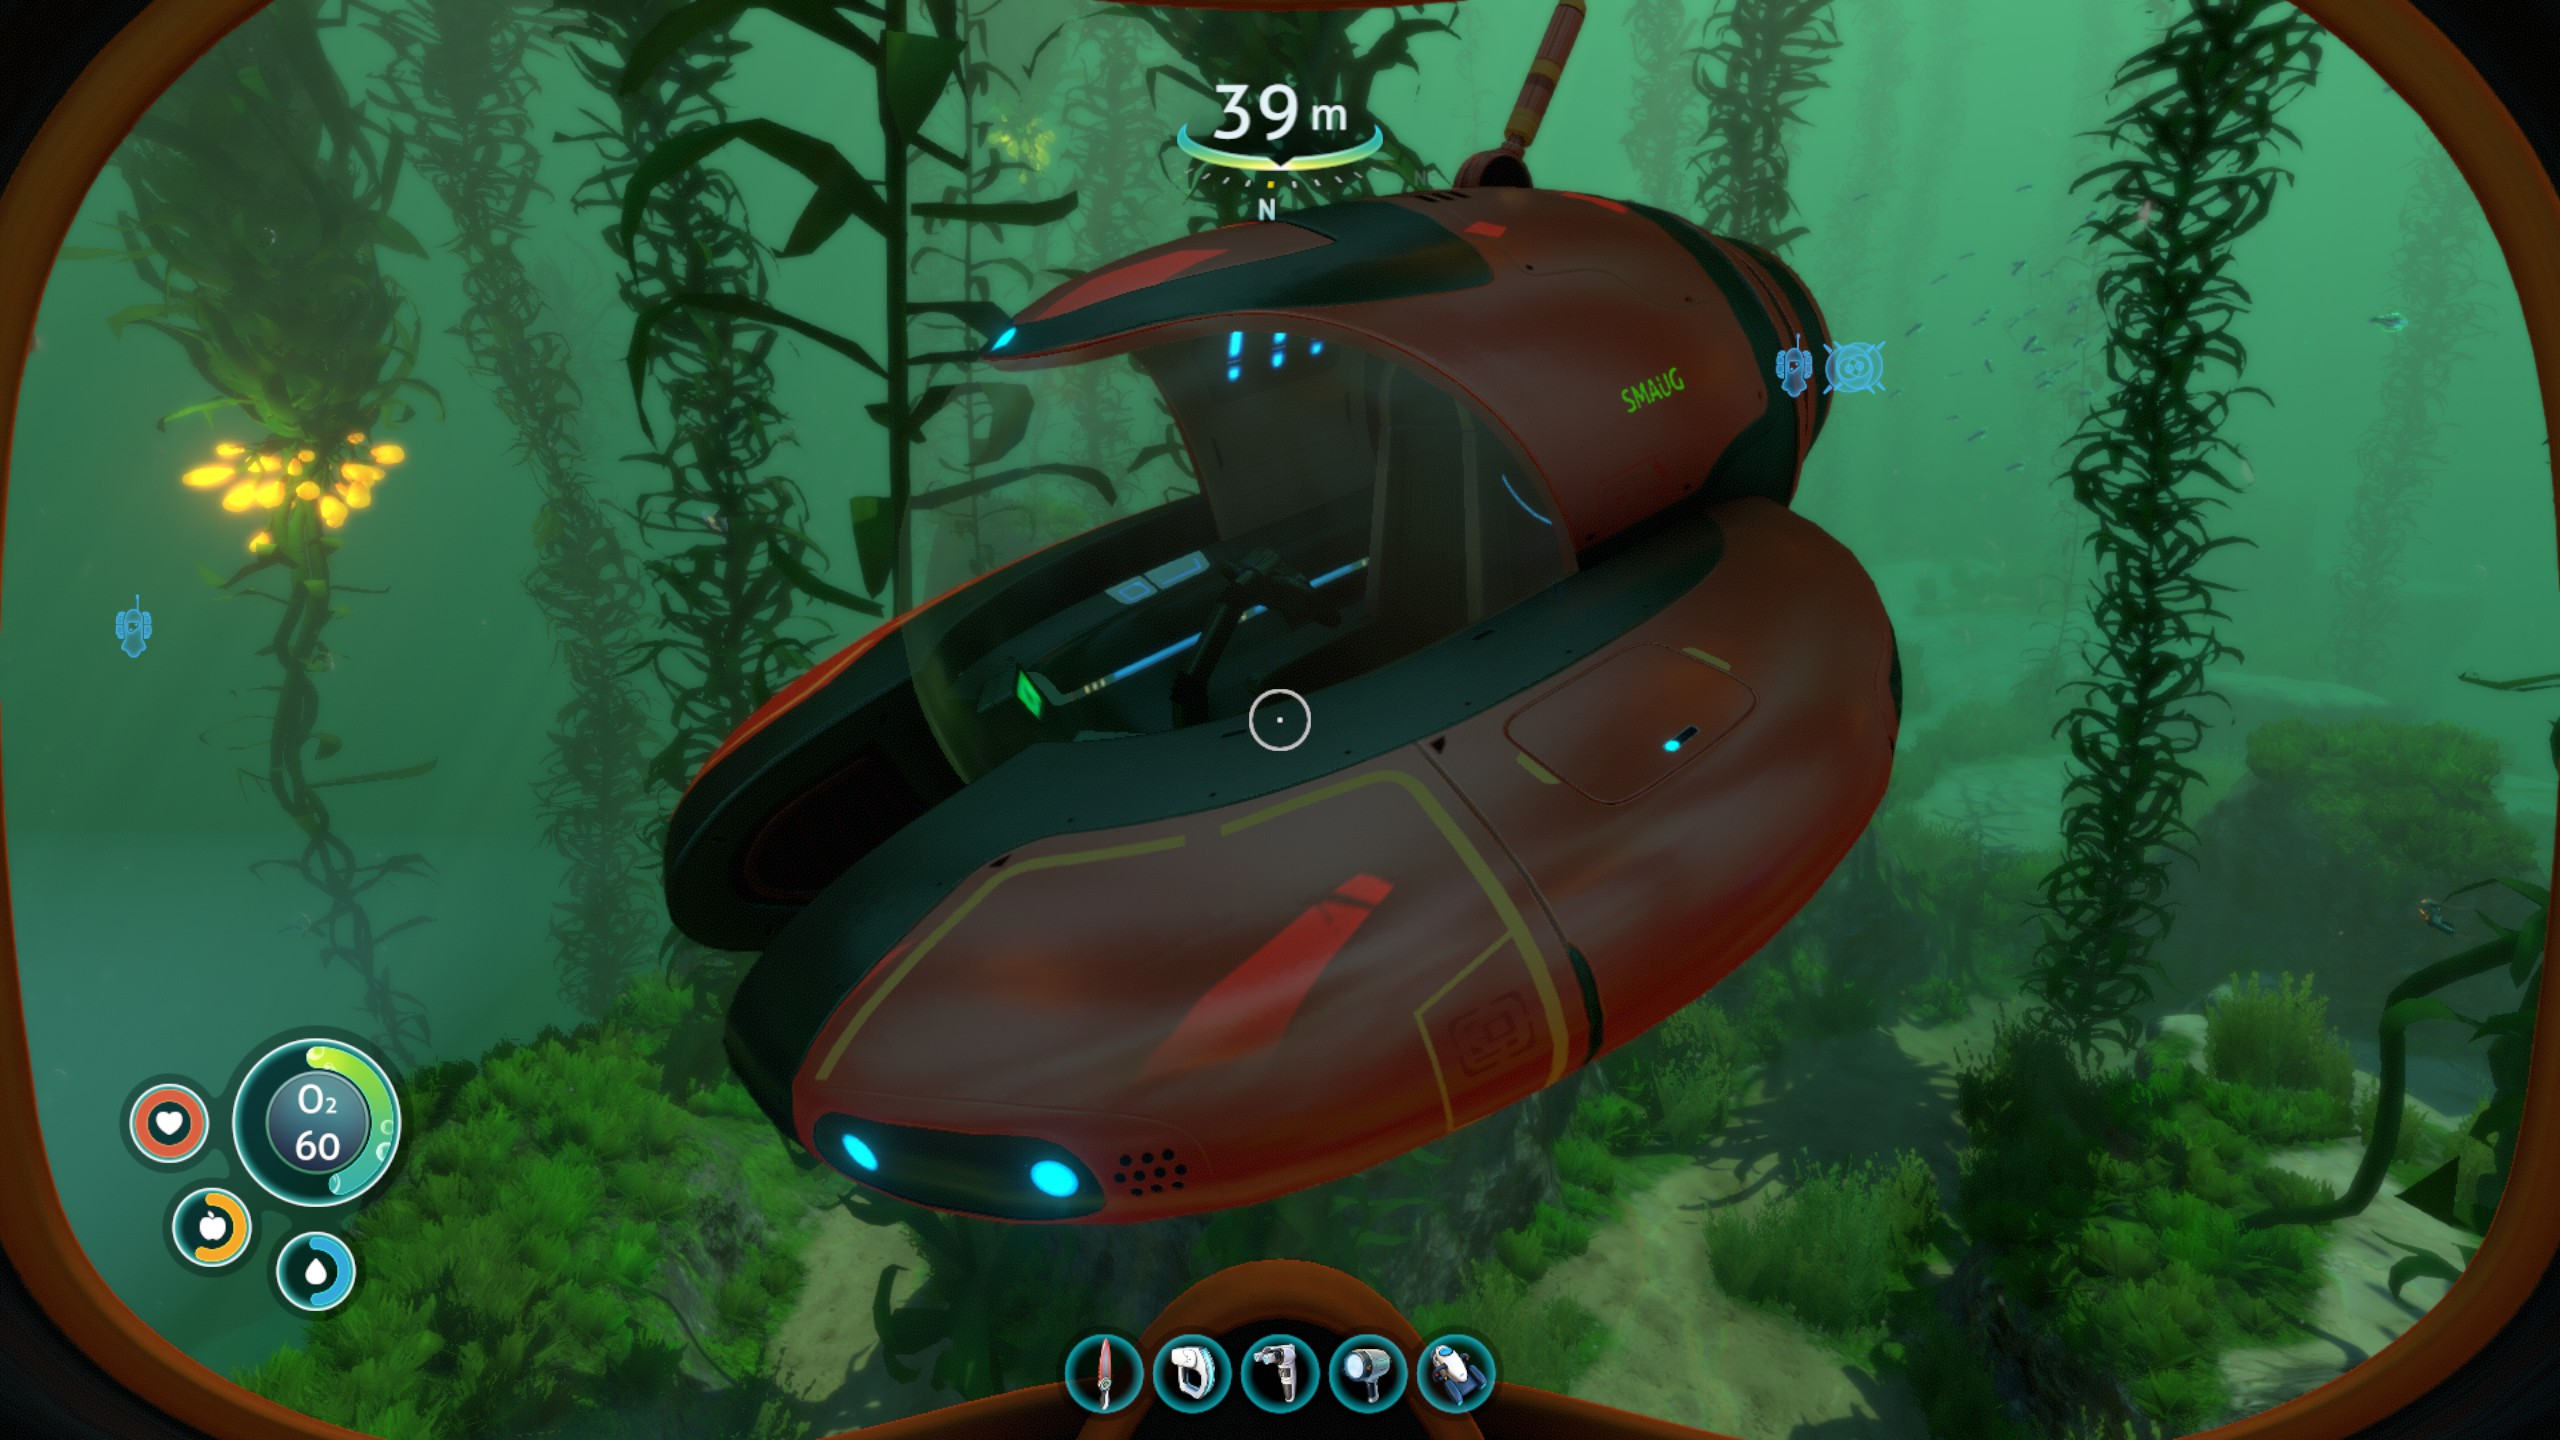 Subnautica Scuba Unknown Worlds Drowning Games Quarter To Three Forums I tried adding them but it's really not clear if it made a difference or not. subnautica scuba unknown worlds